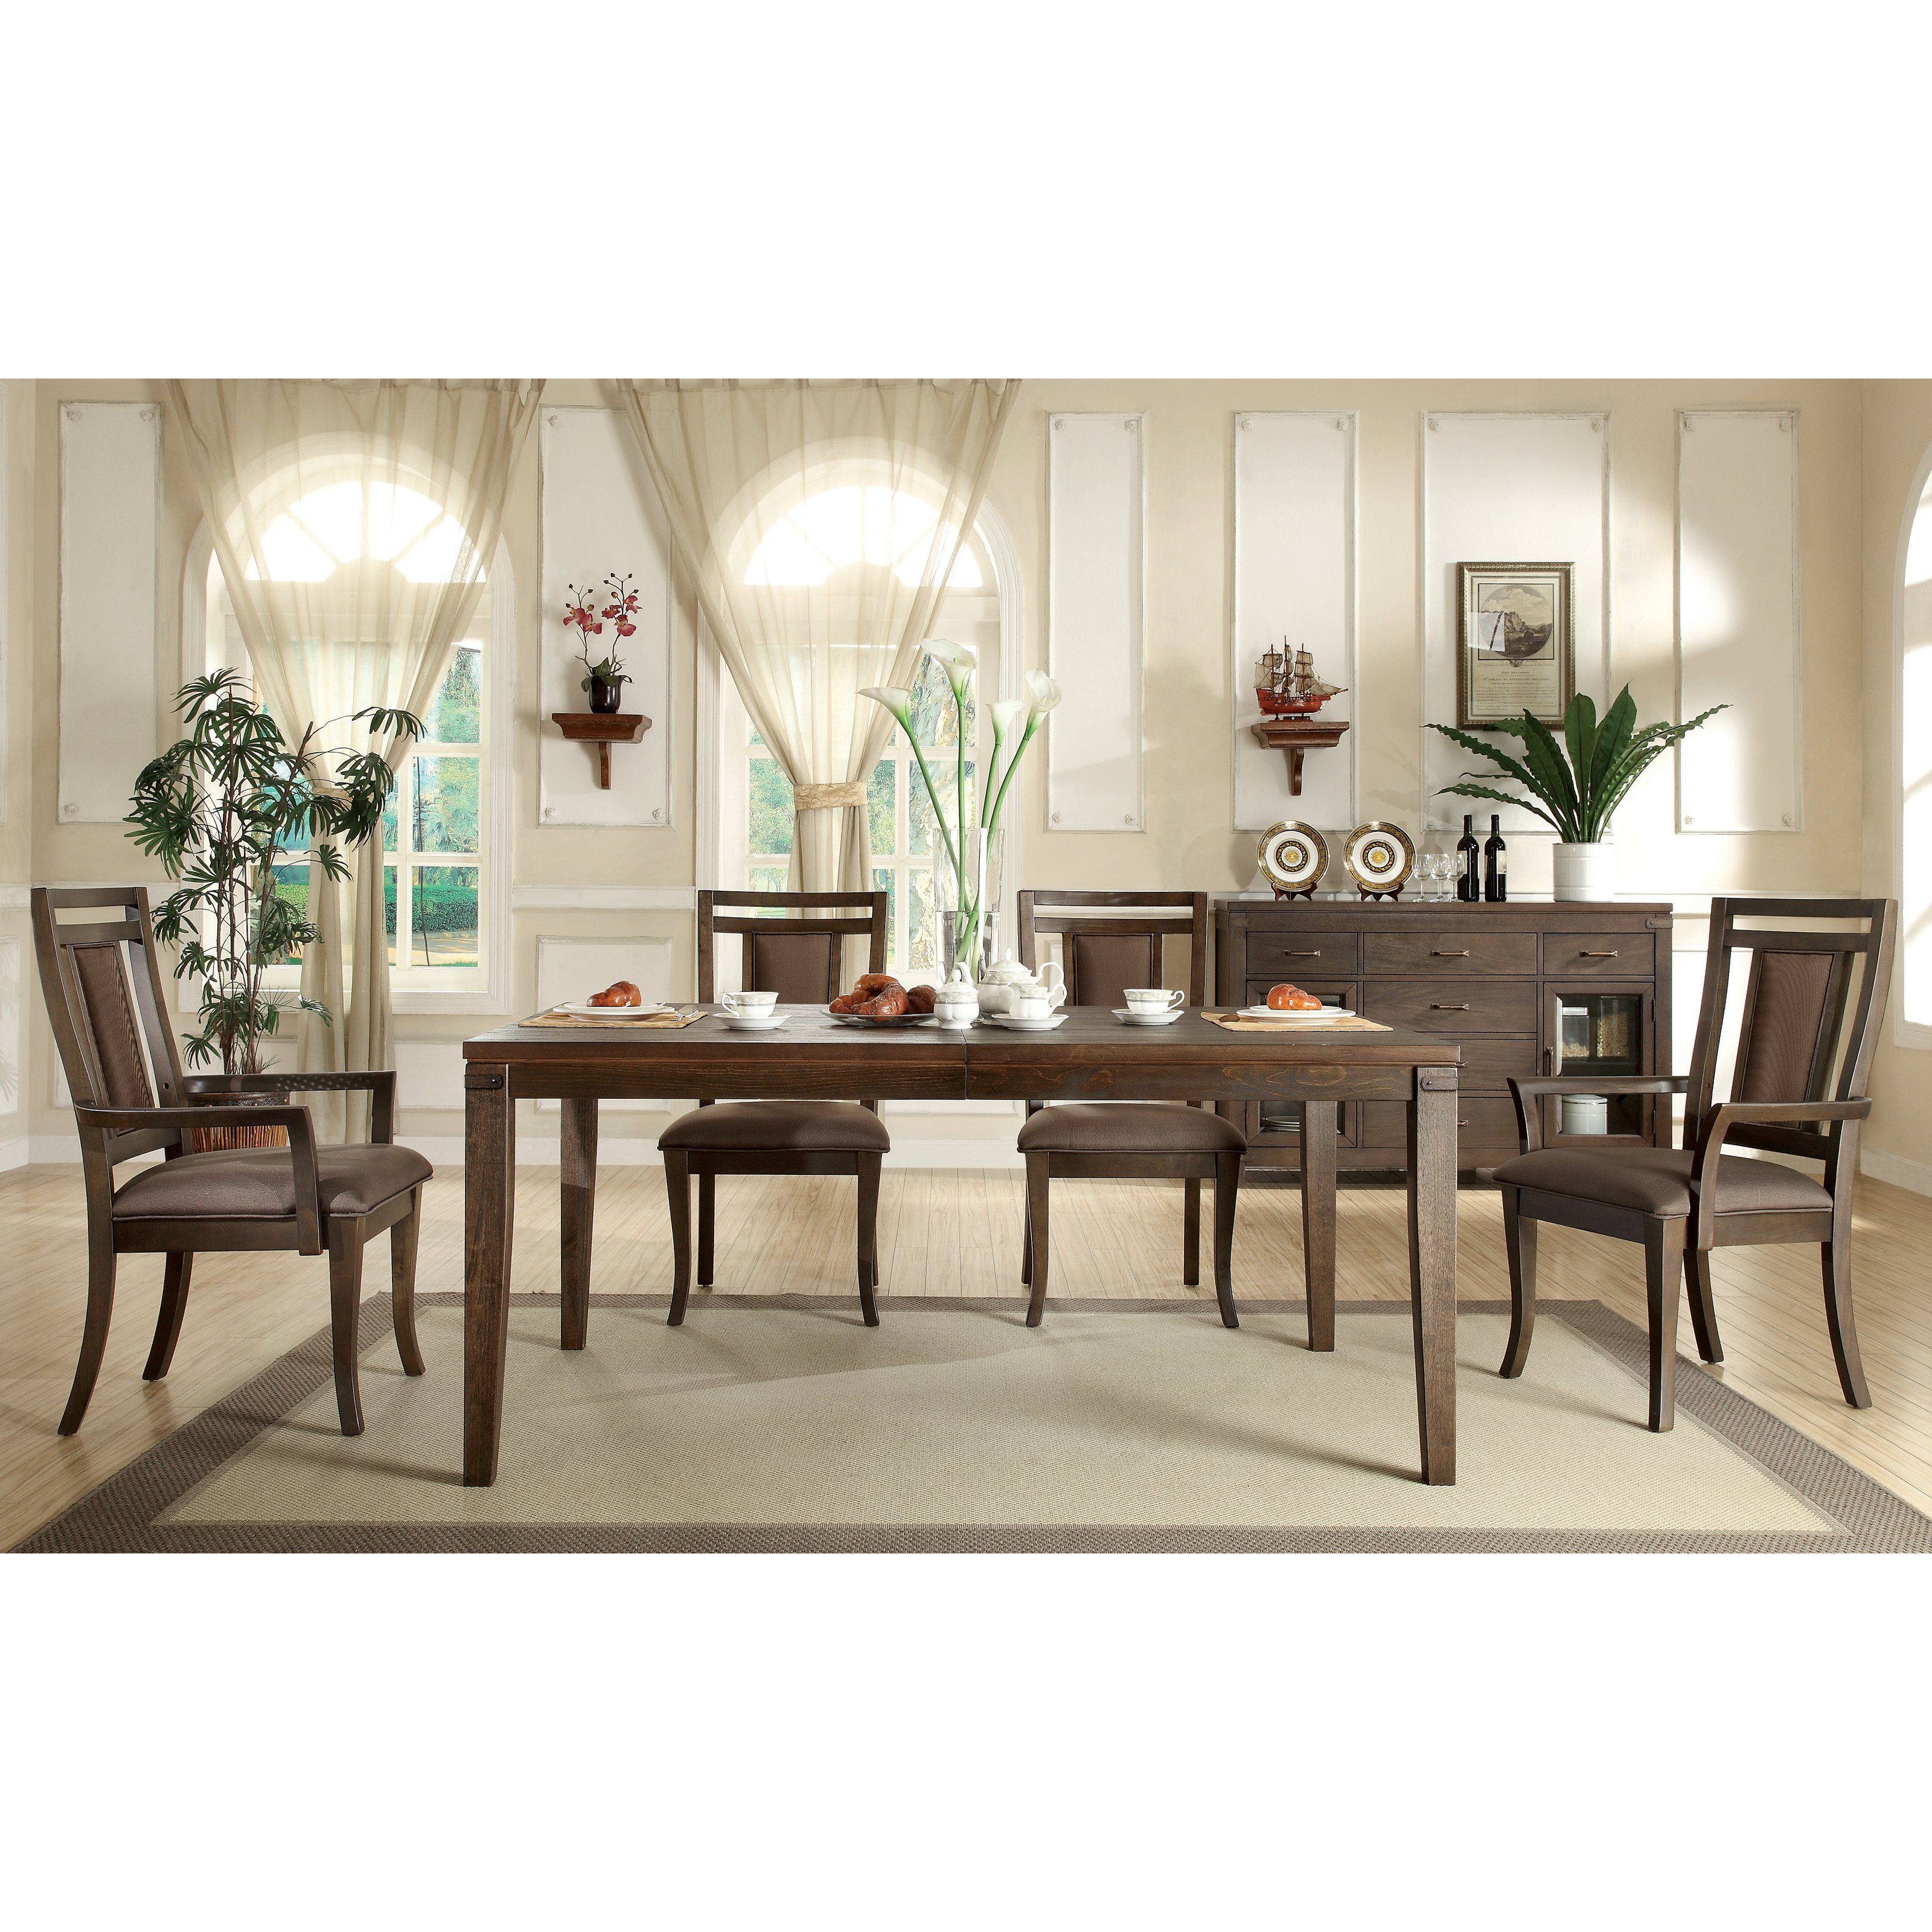 Have to have it Riverside Promenade Rectangular 7 Piece Dining